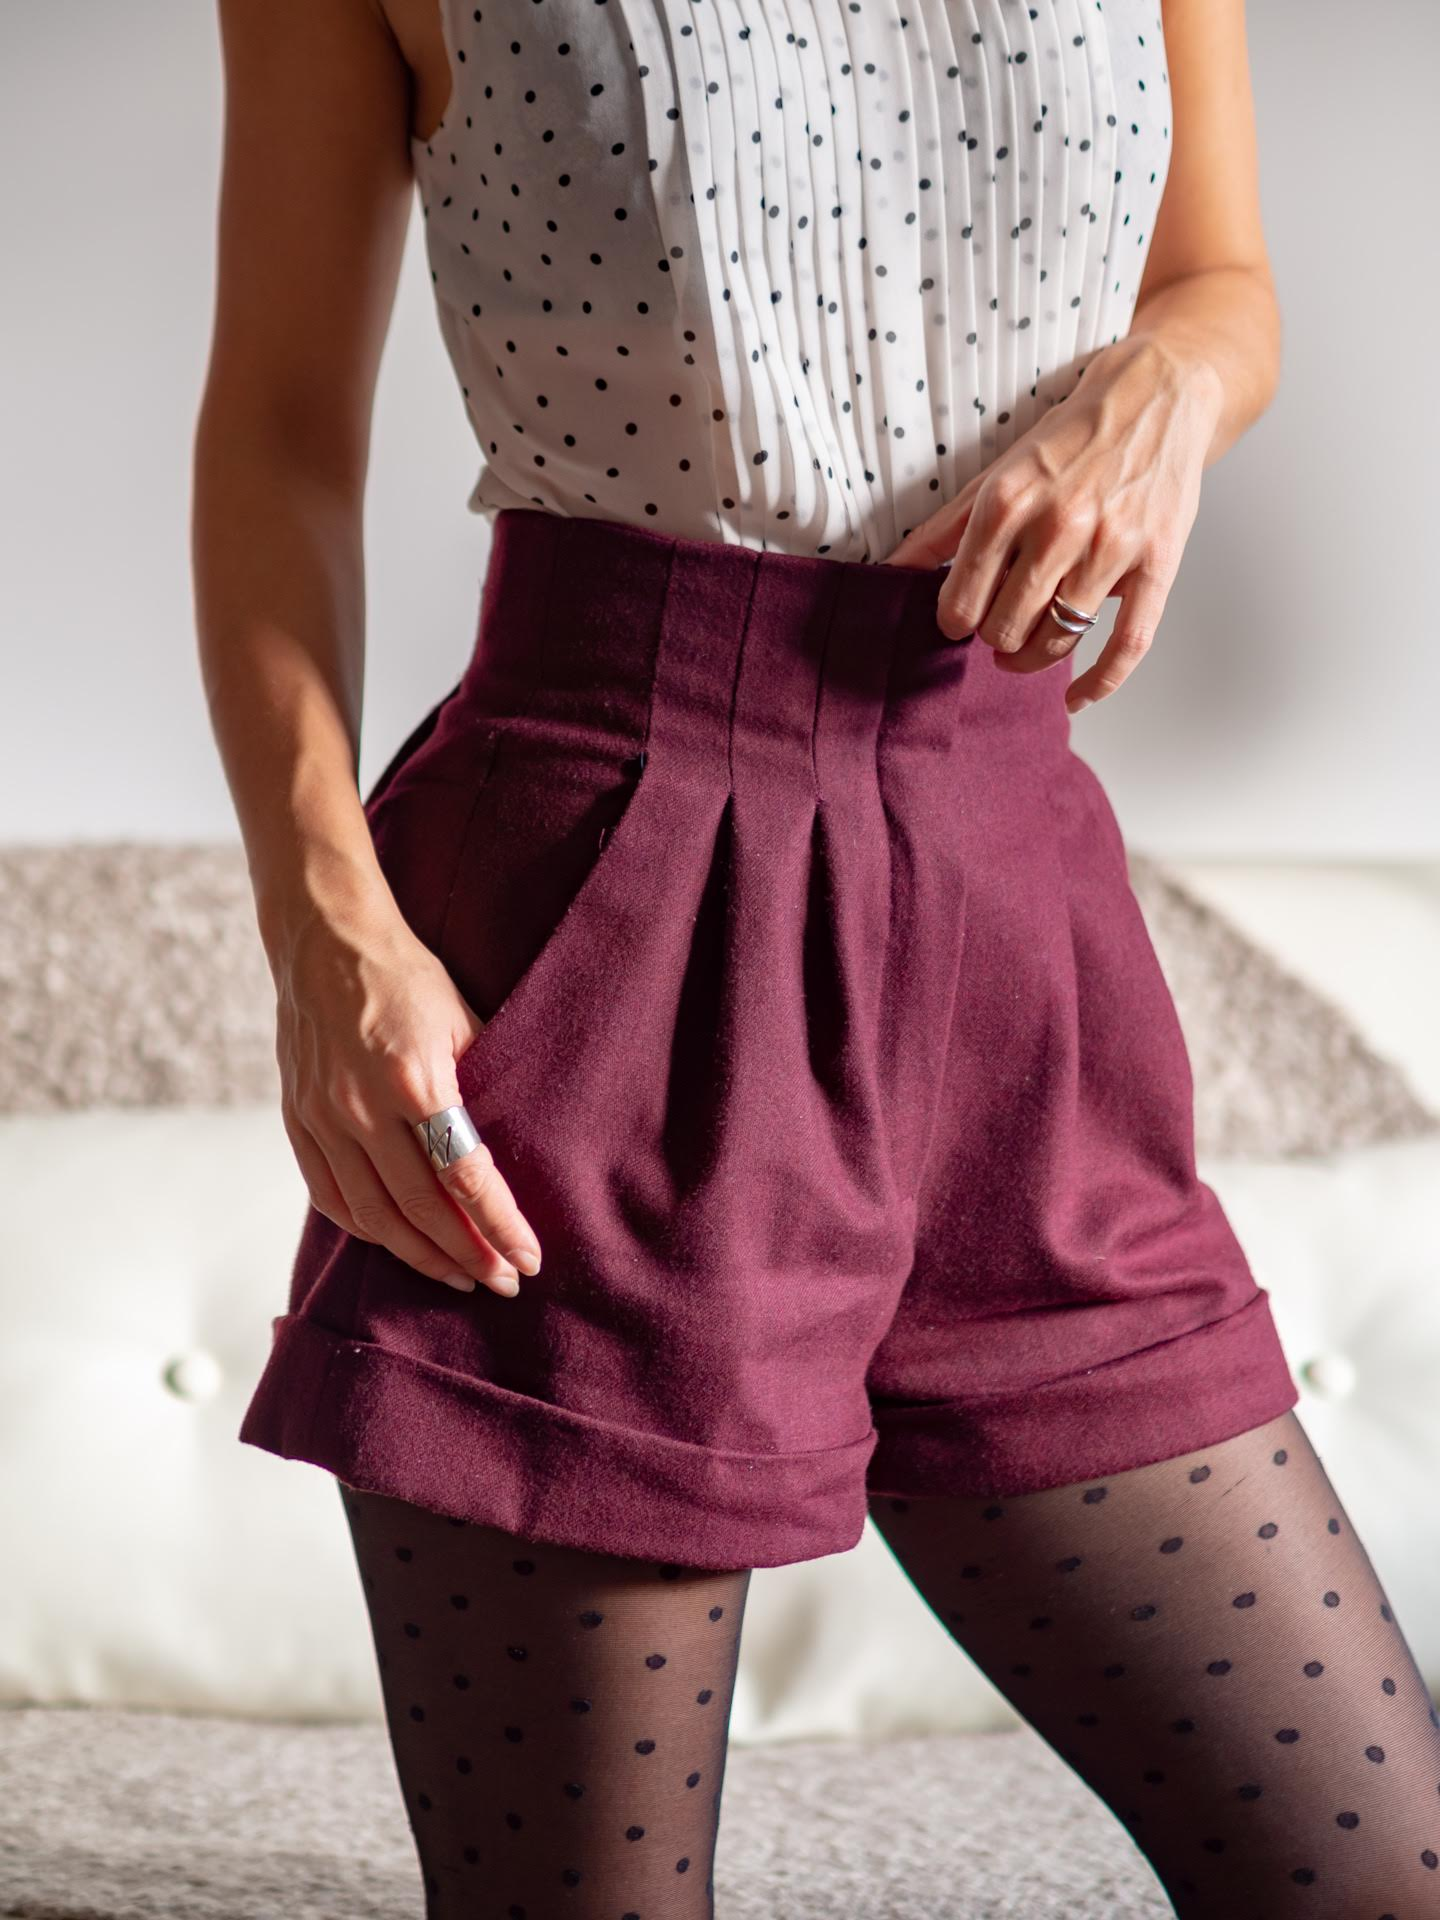 The image shows a close up of Giorgia wearing the shorts with a light blouse.